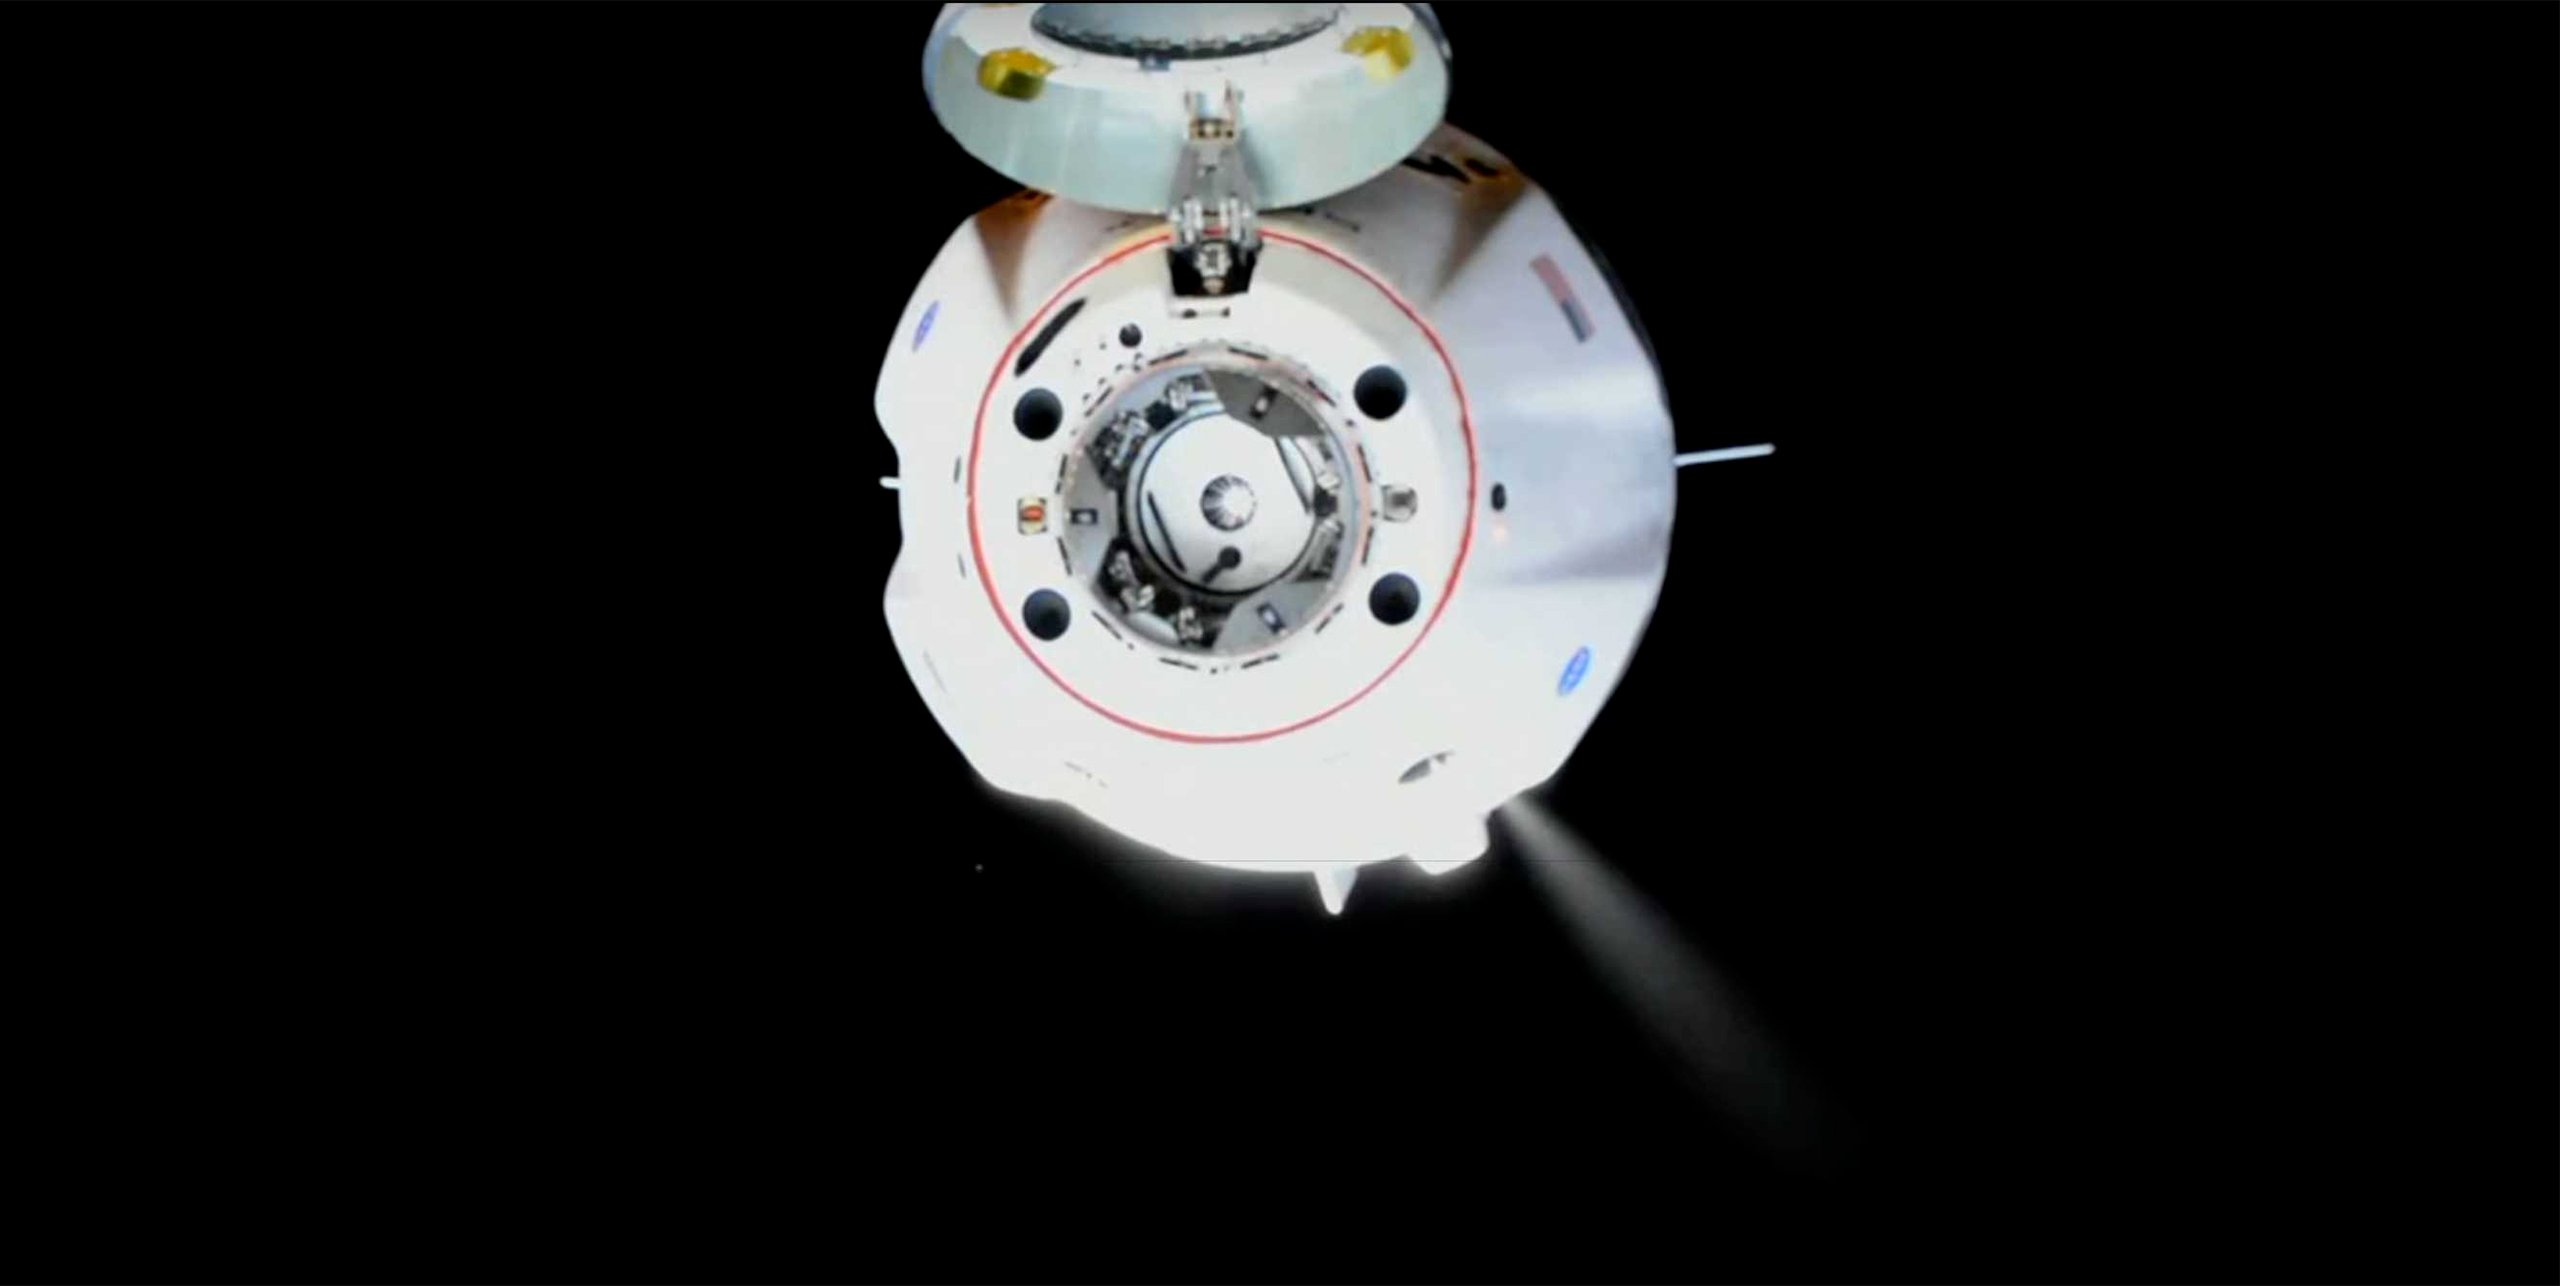 Historic SpaceX Capsule 'Endeavour' Docks at The International Space Station